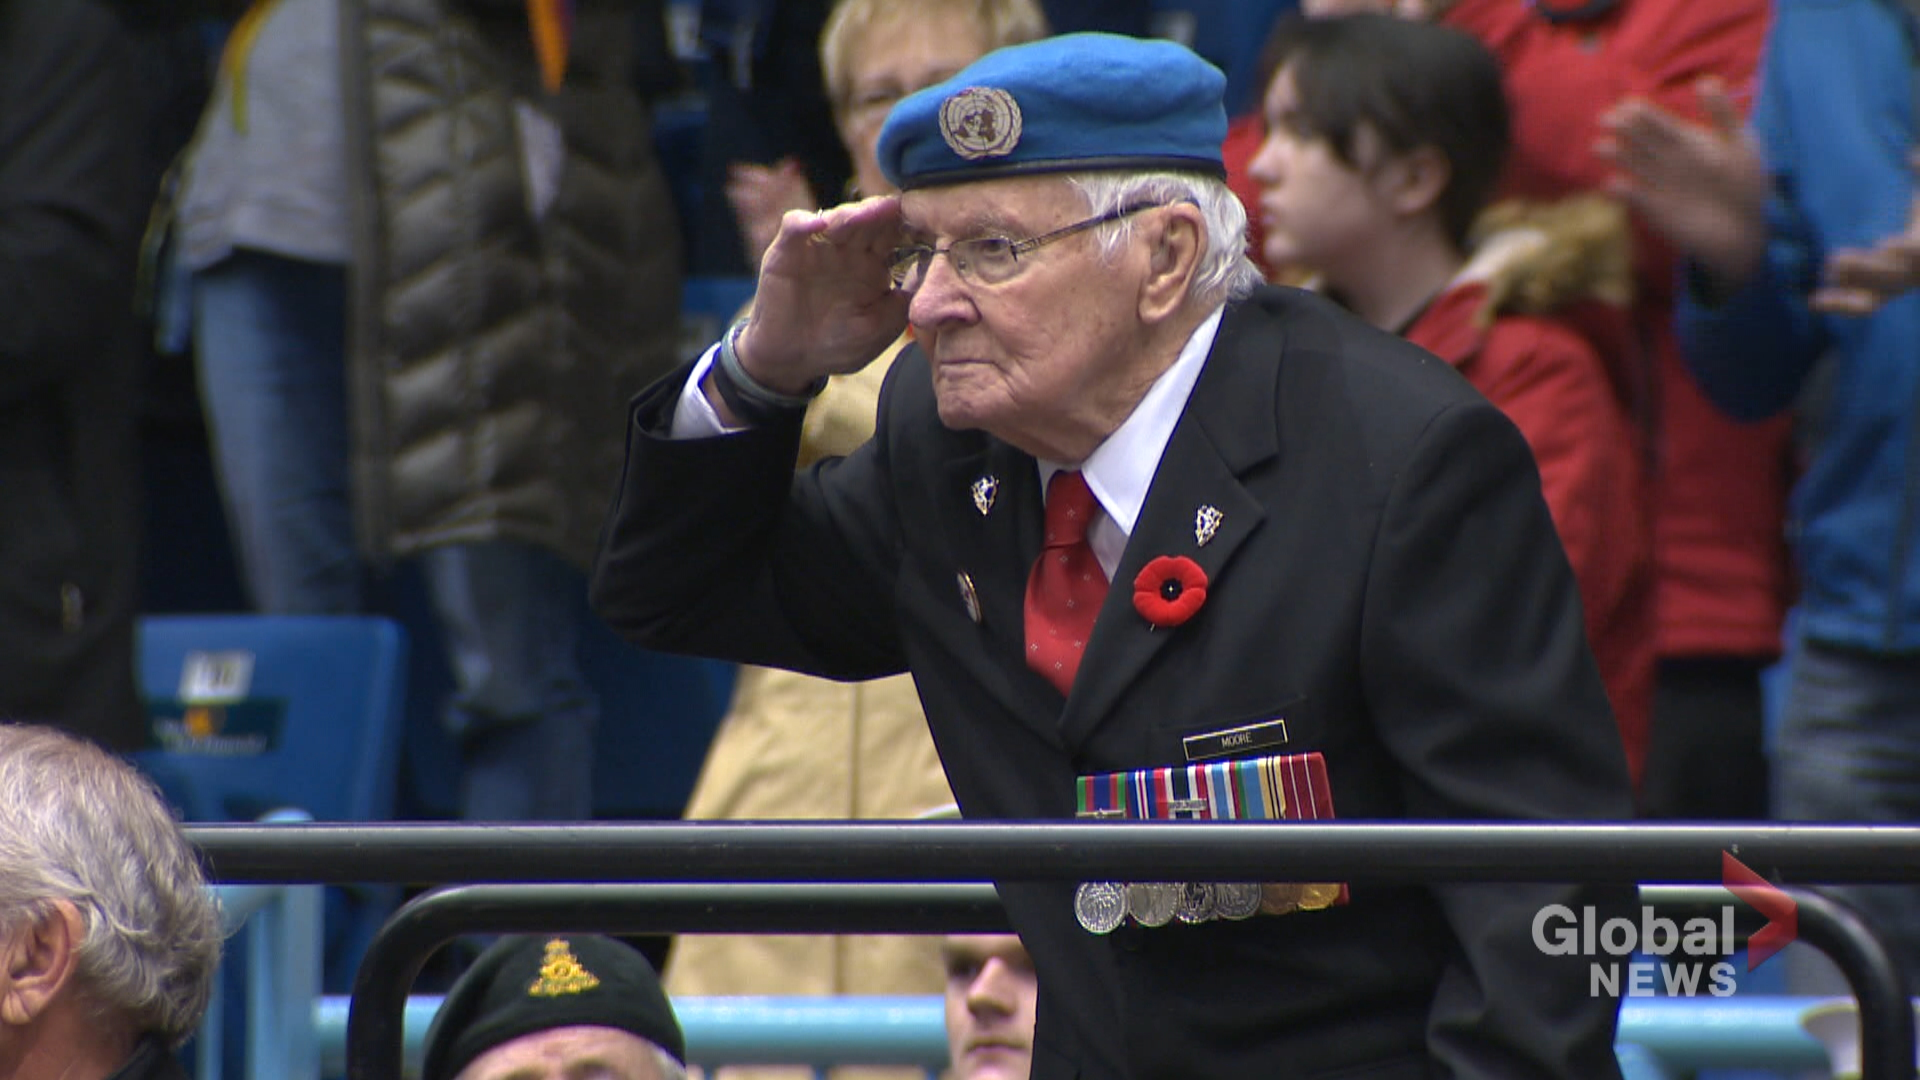 SJ Remembrance Day official hopes more veterans partake in future Nov. 11 ceremonies